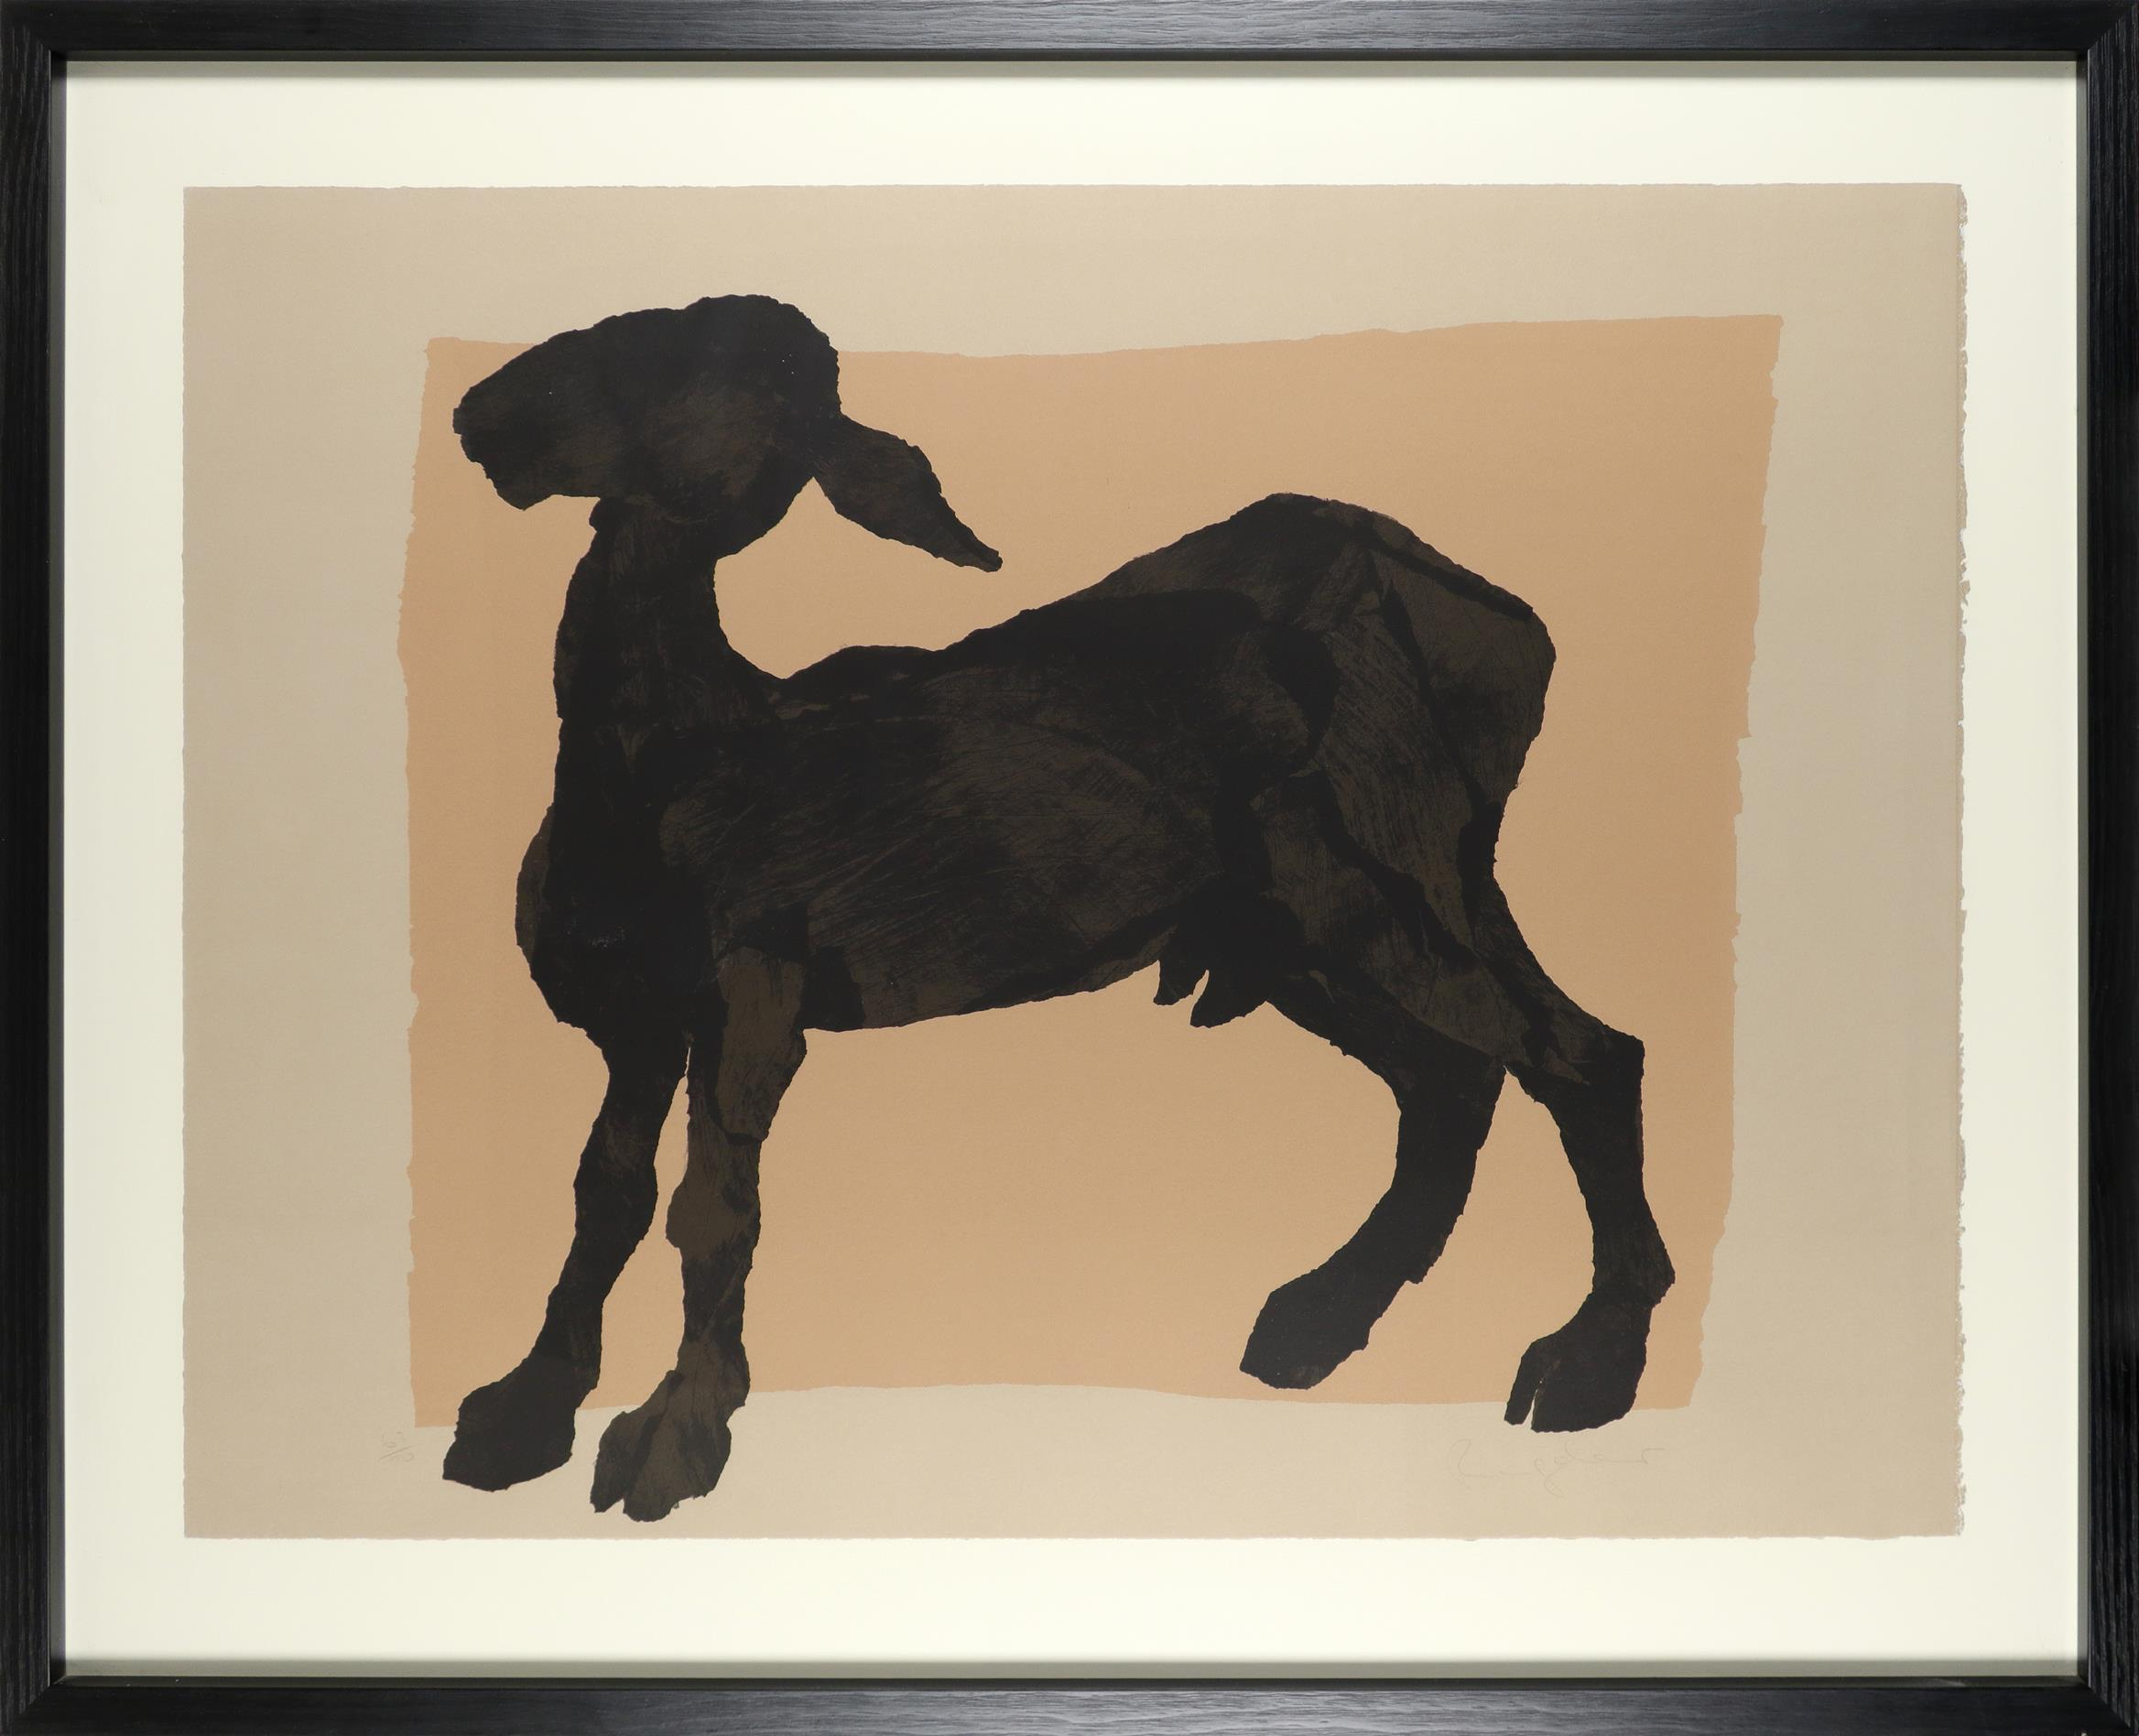 ‡Sophie Ryder (b.1963) Black goat Signed and numbered 63/70 Ryder (in pencil) Screenprint 79 x 103. - Image 2 of 3